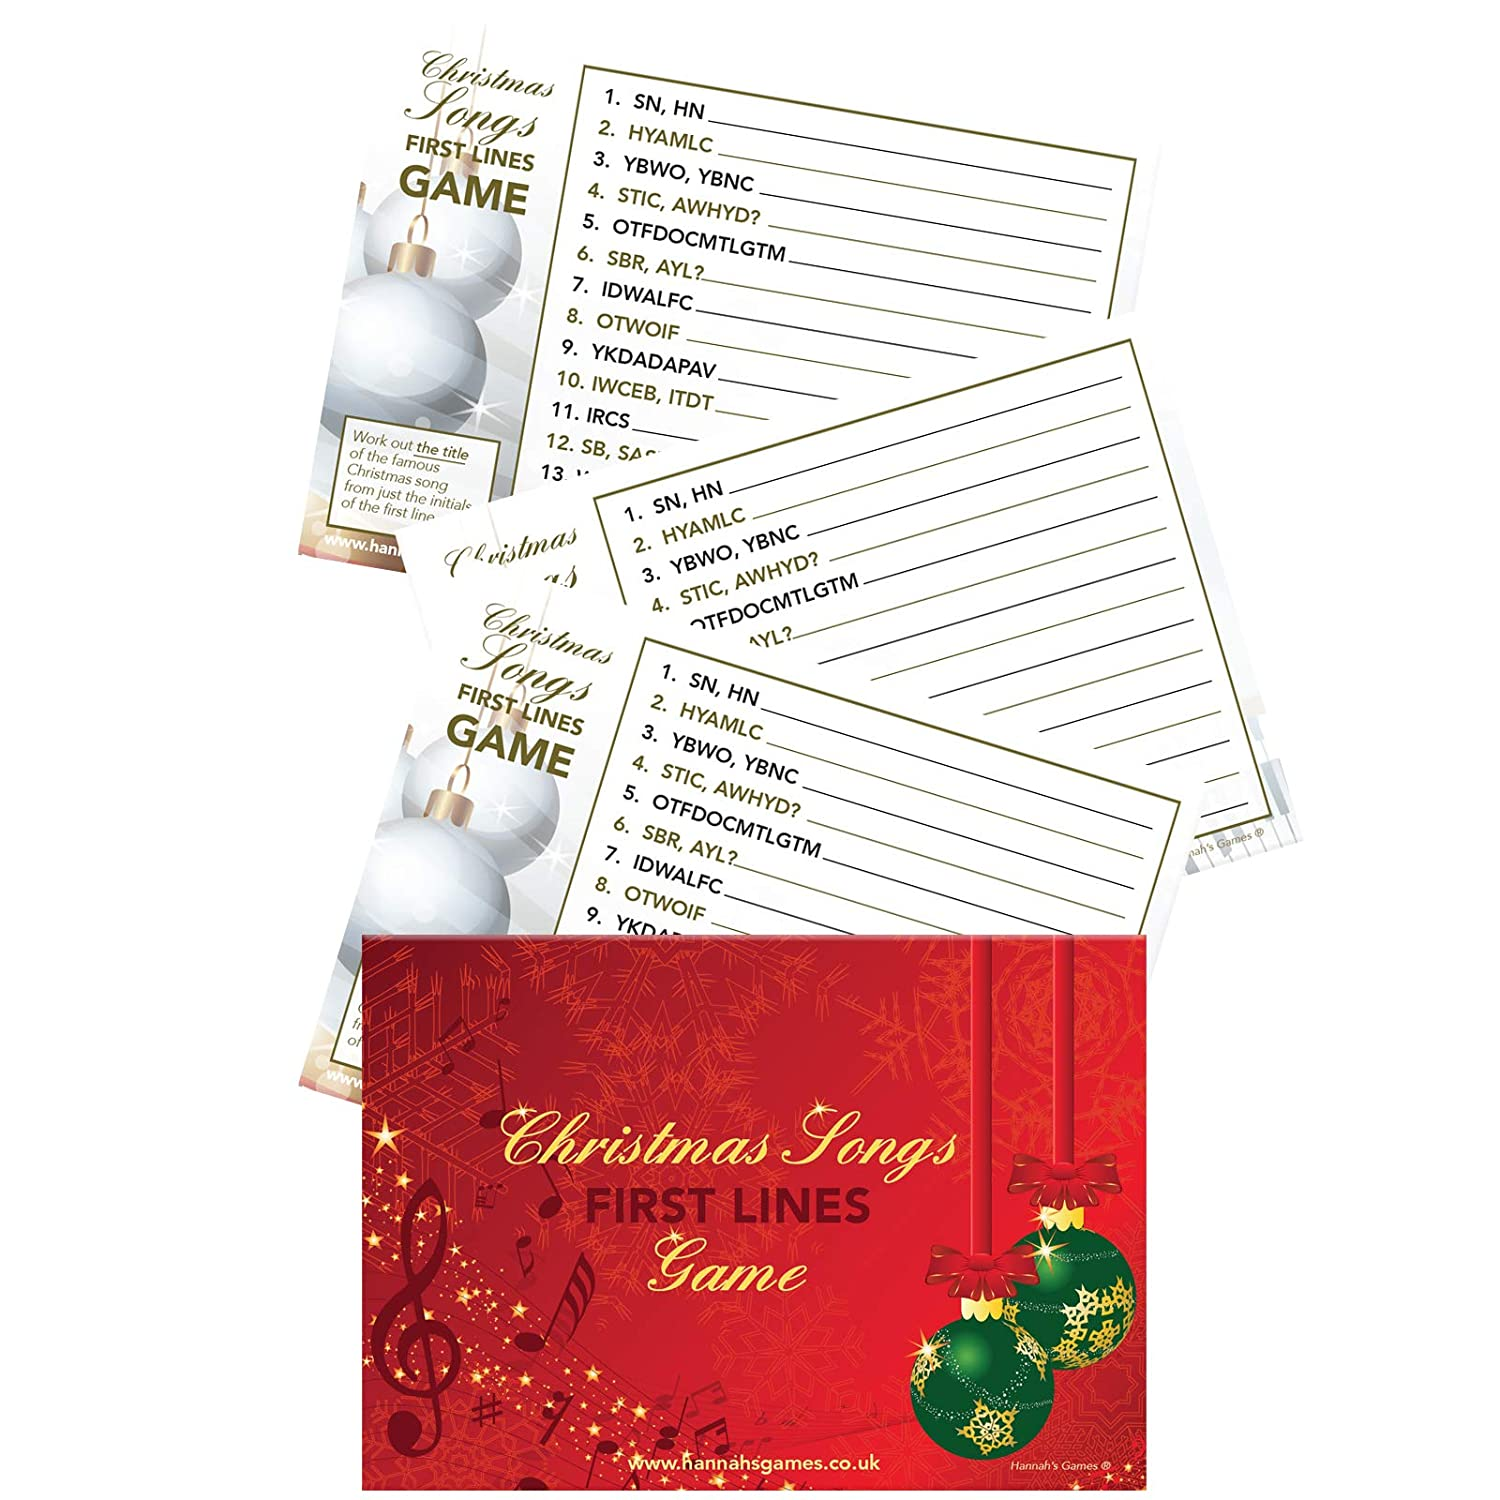 Christmas Songs First Letters Game - Christmas Games for families ...